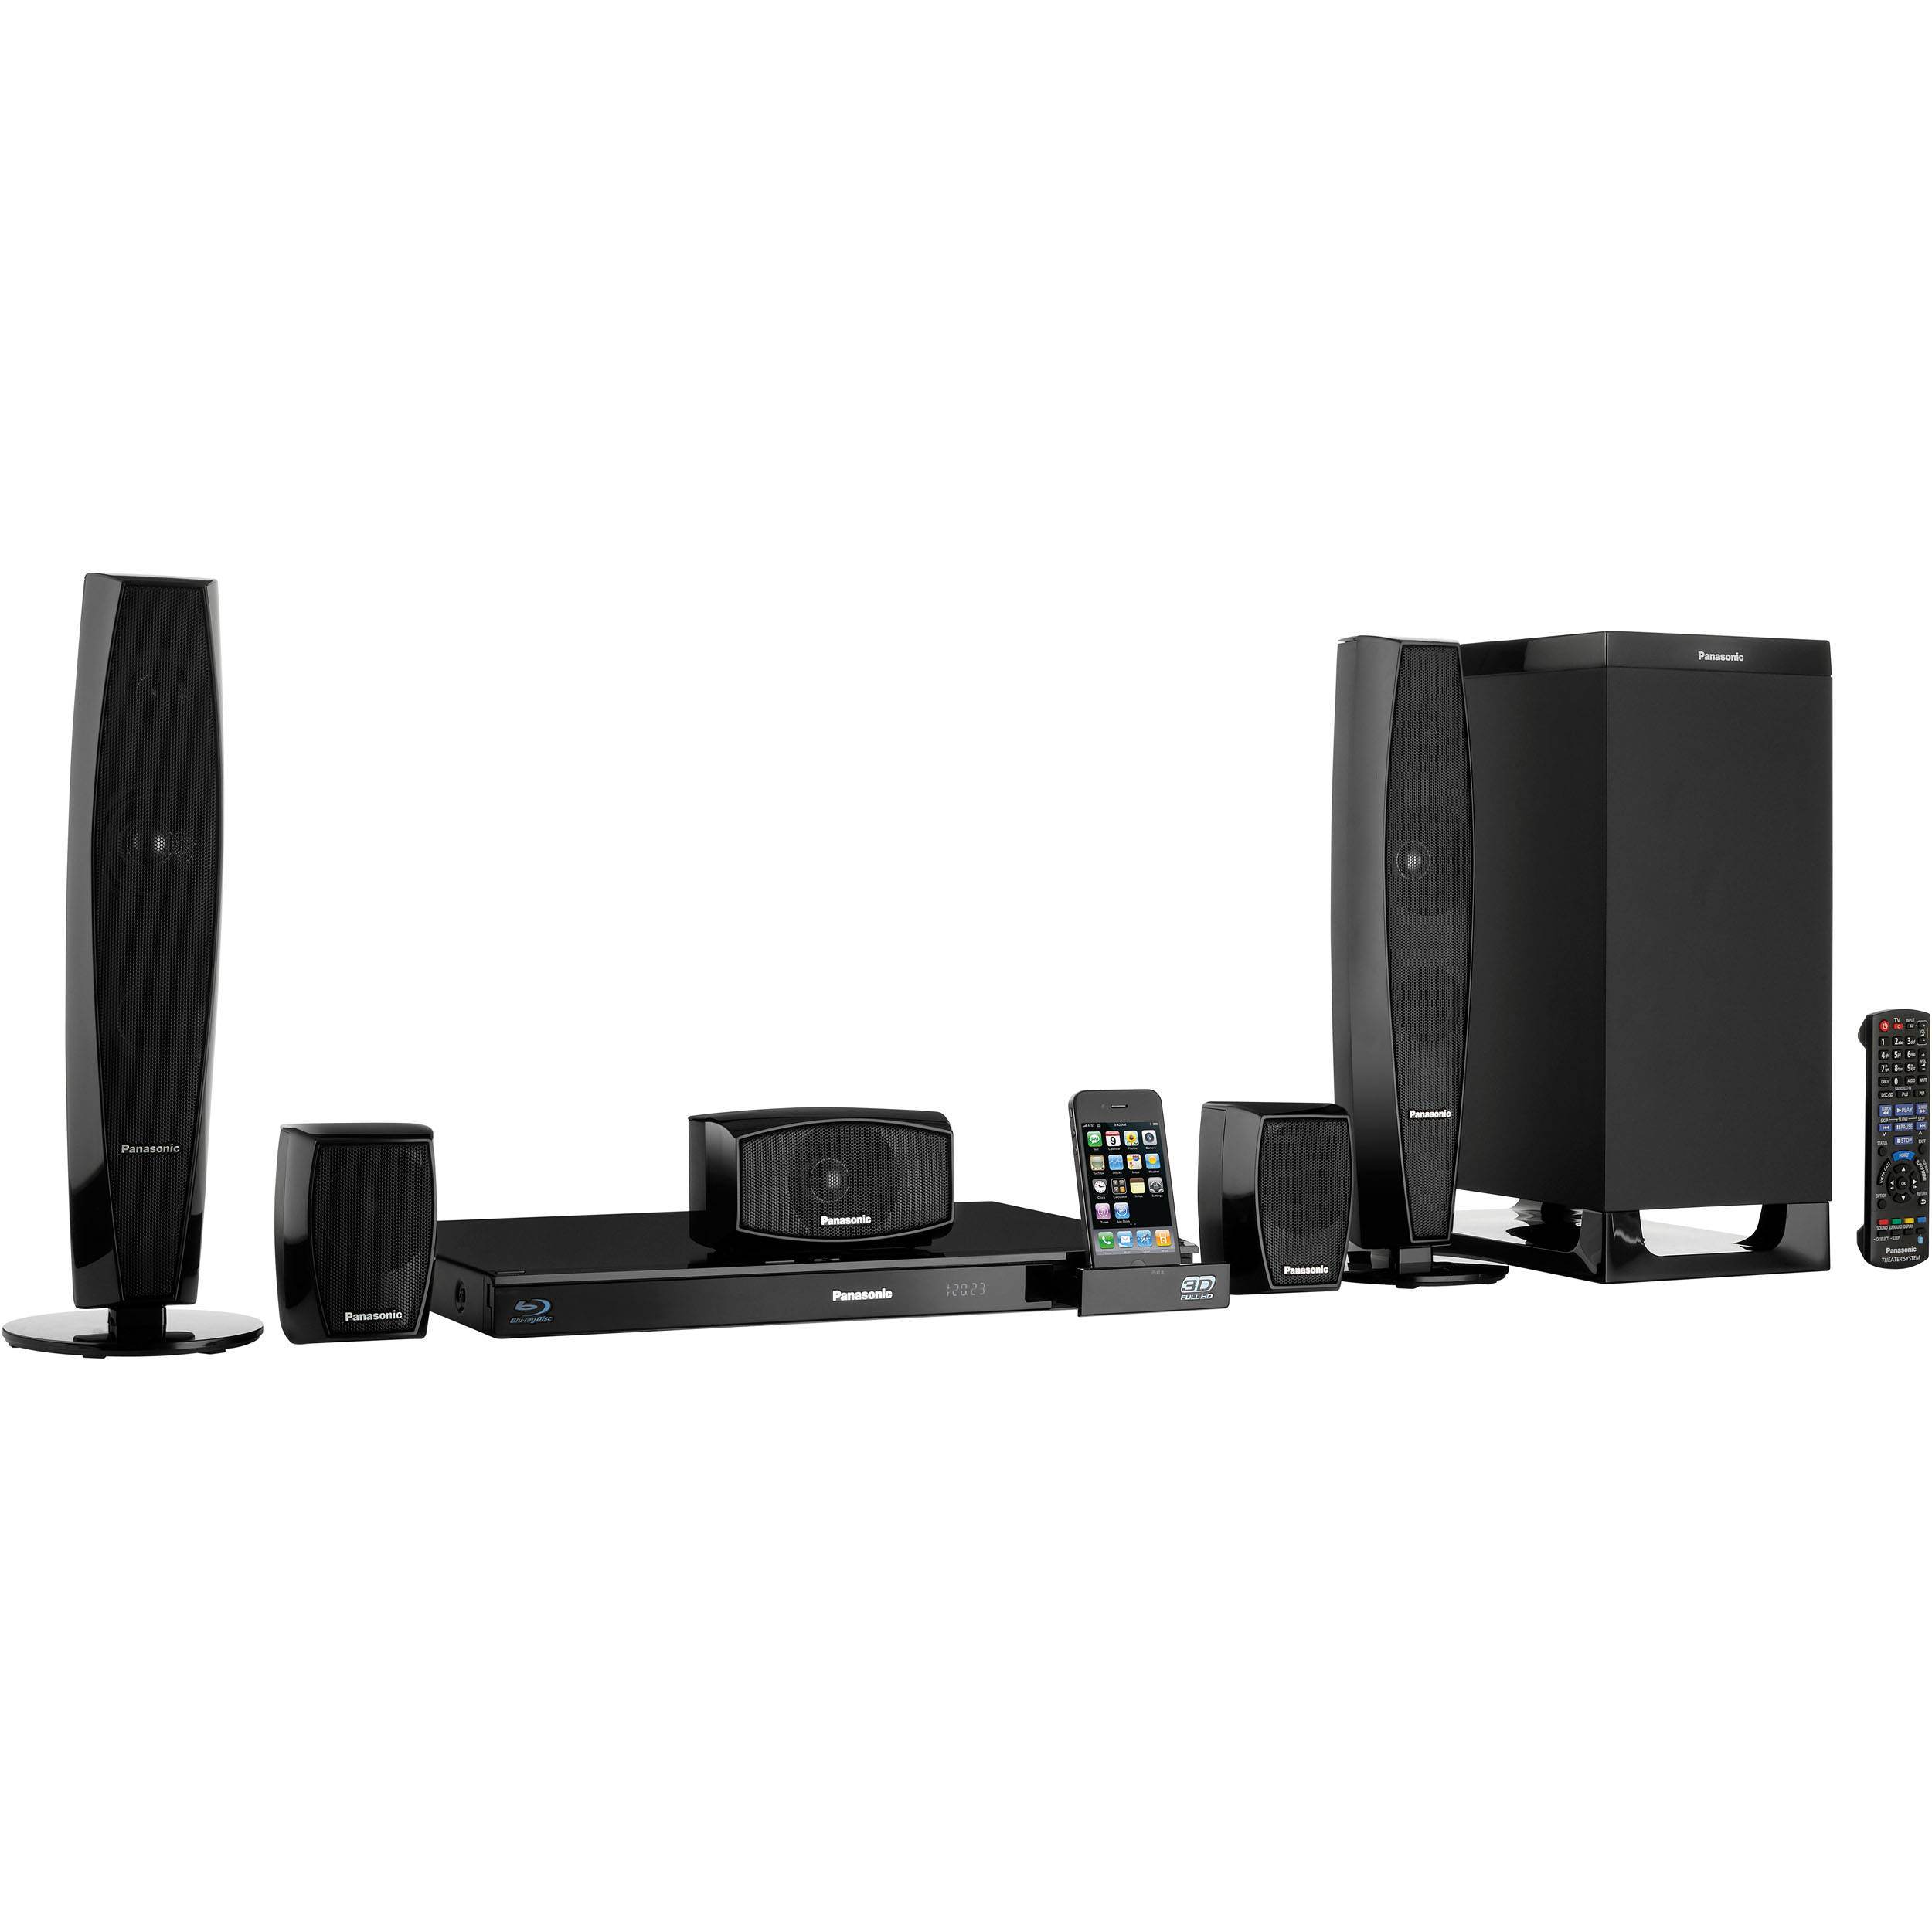 panasonic sc btt370 full hd 3d blu ray home theater sc btt370. Black Bedroom Furniture Sets. Home Design Ideas